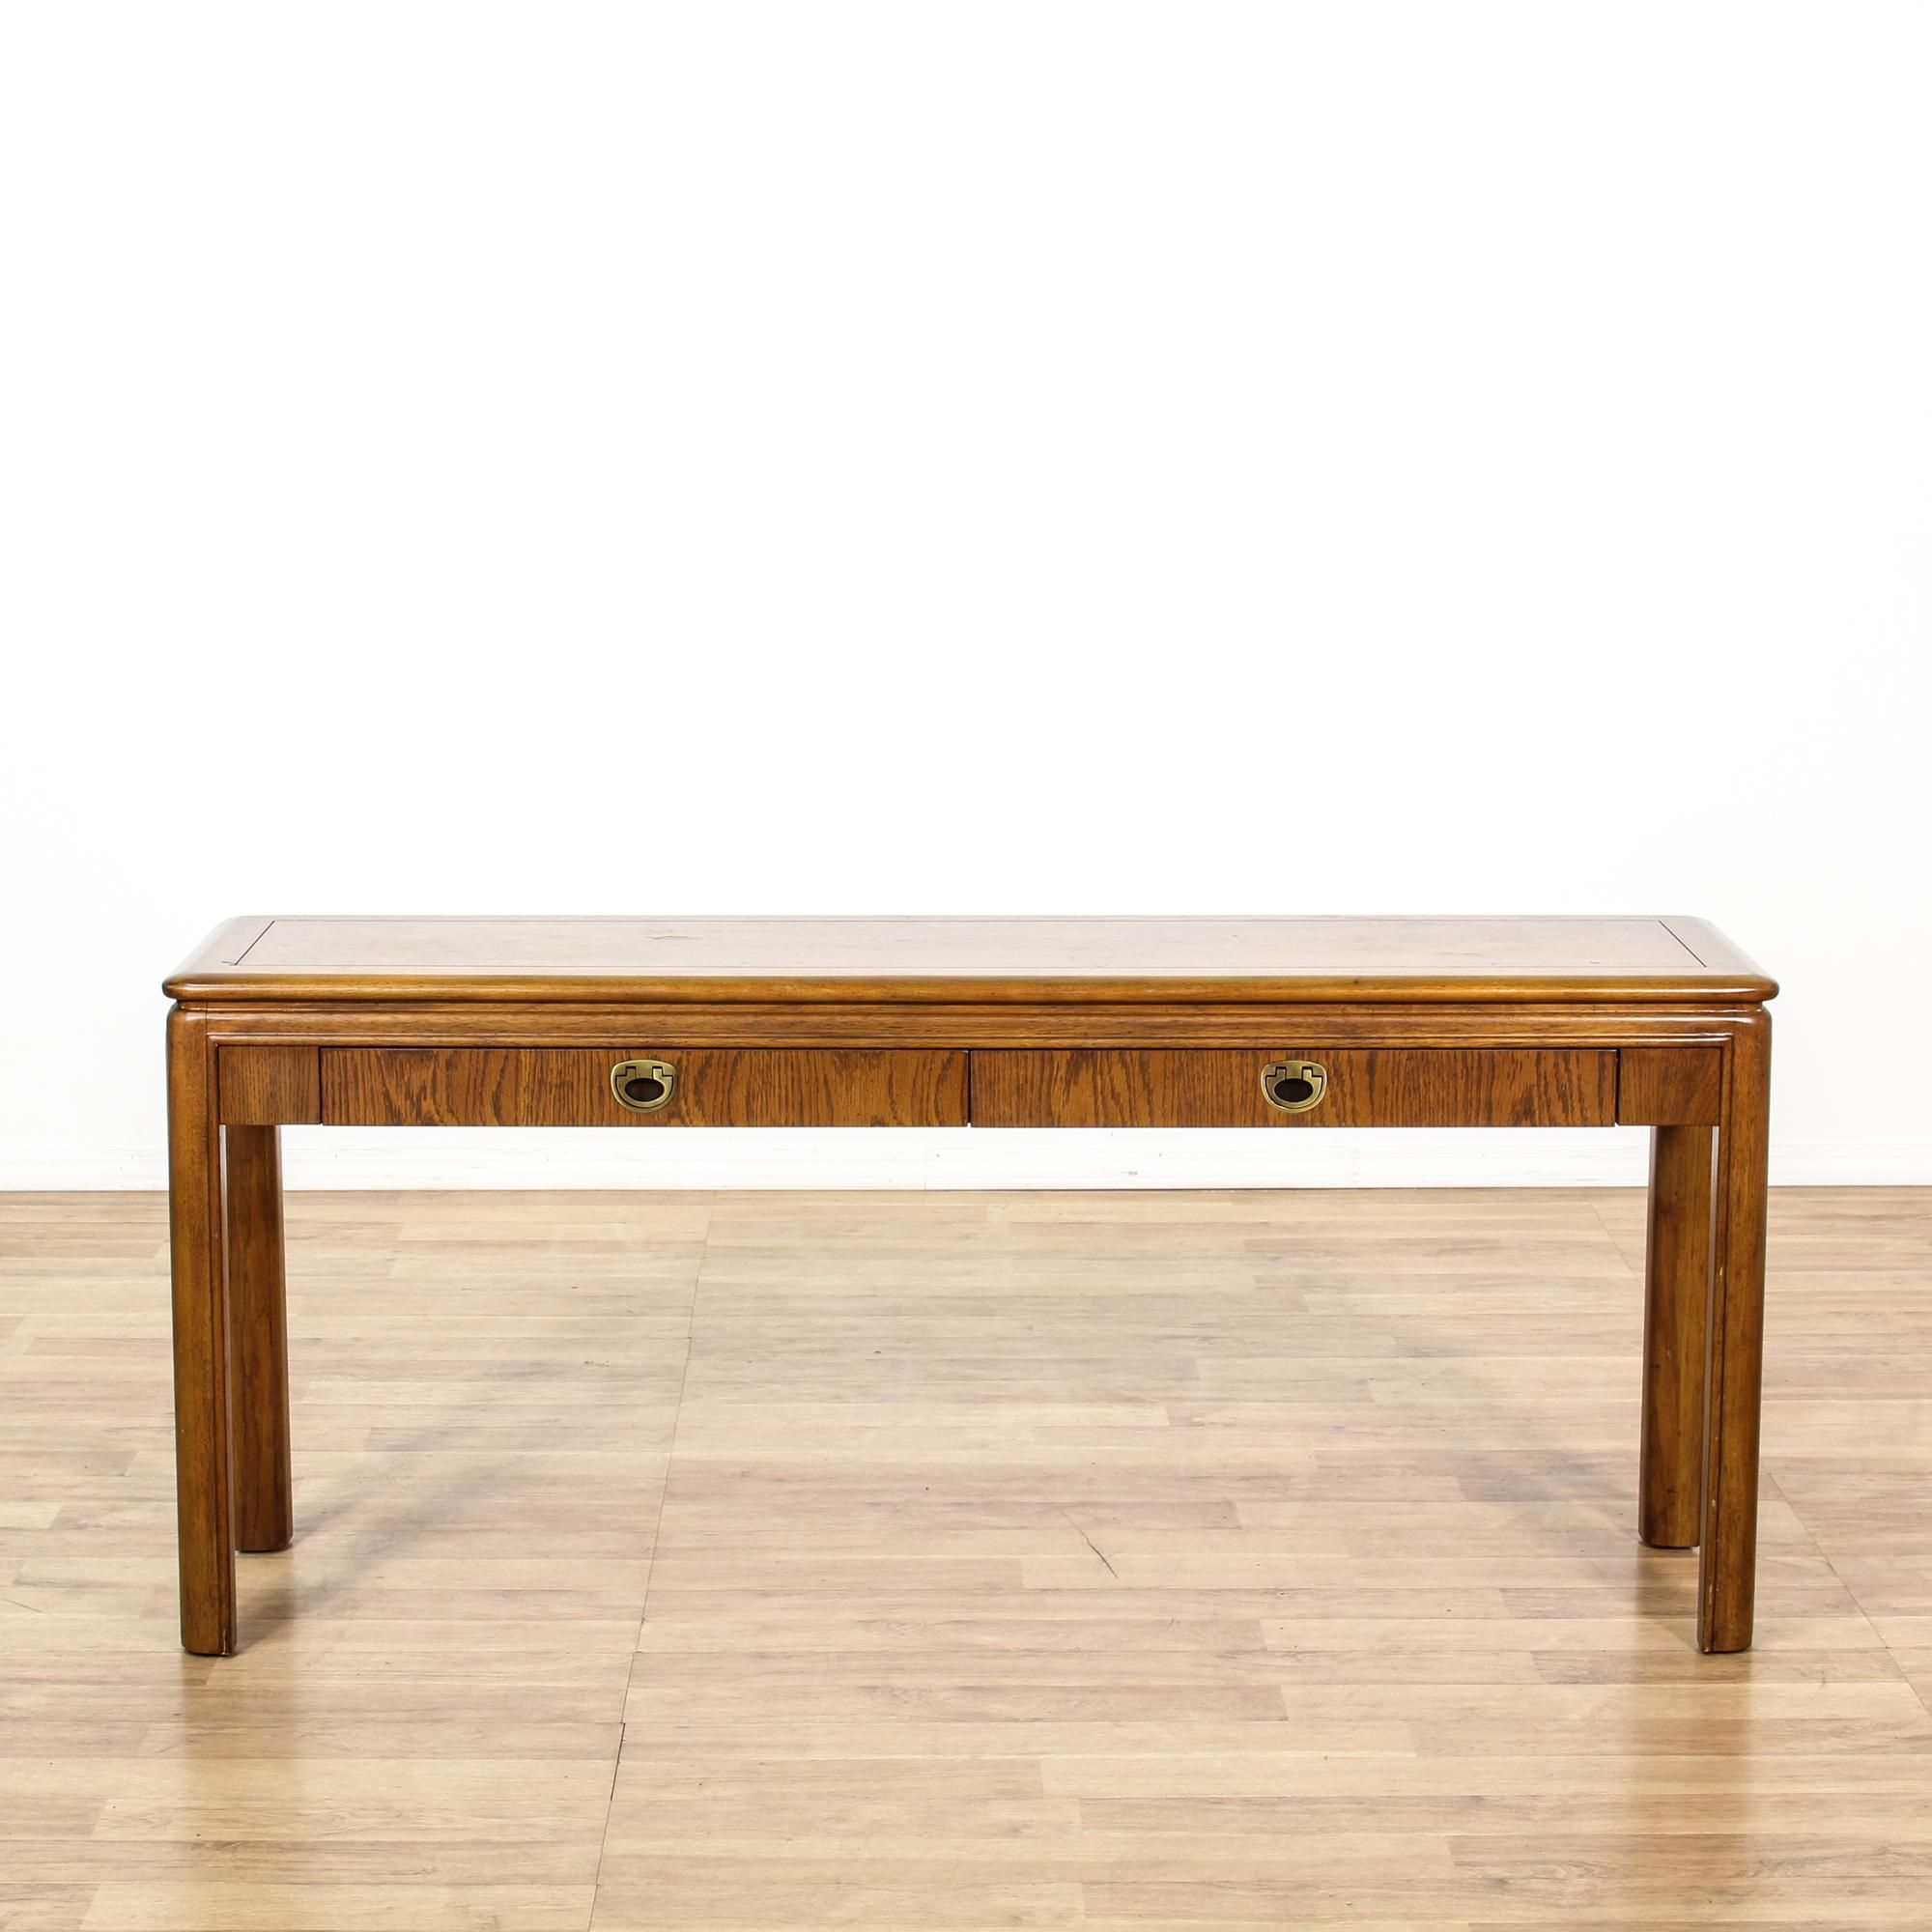 Drexel Sofa Table High Quality Leather Sofas Uk 54822 Heritage Gl Top Oriental